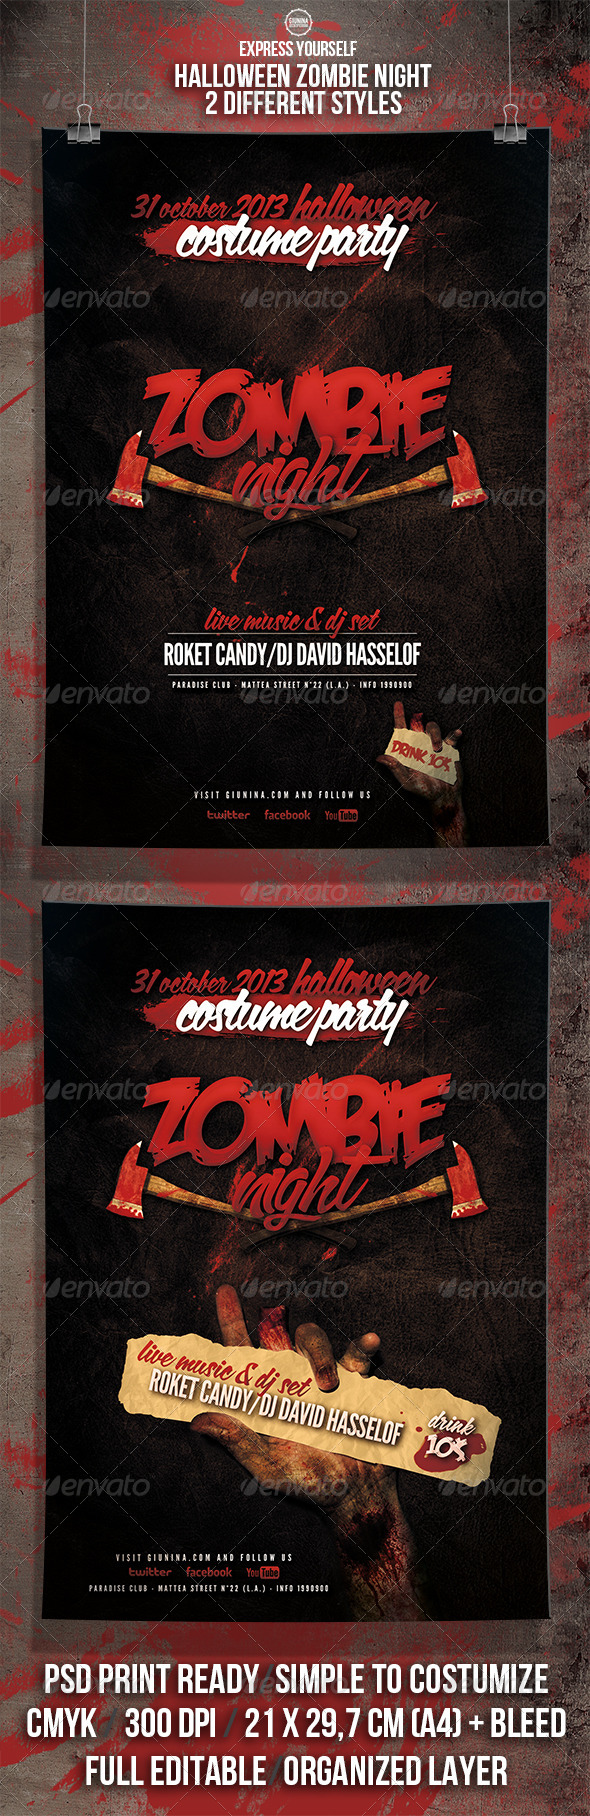 GraphicRiver Halloween Zombie Night Flyer Poster 5705629